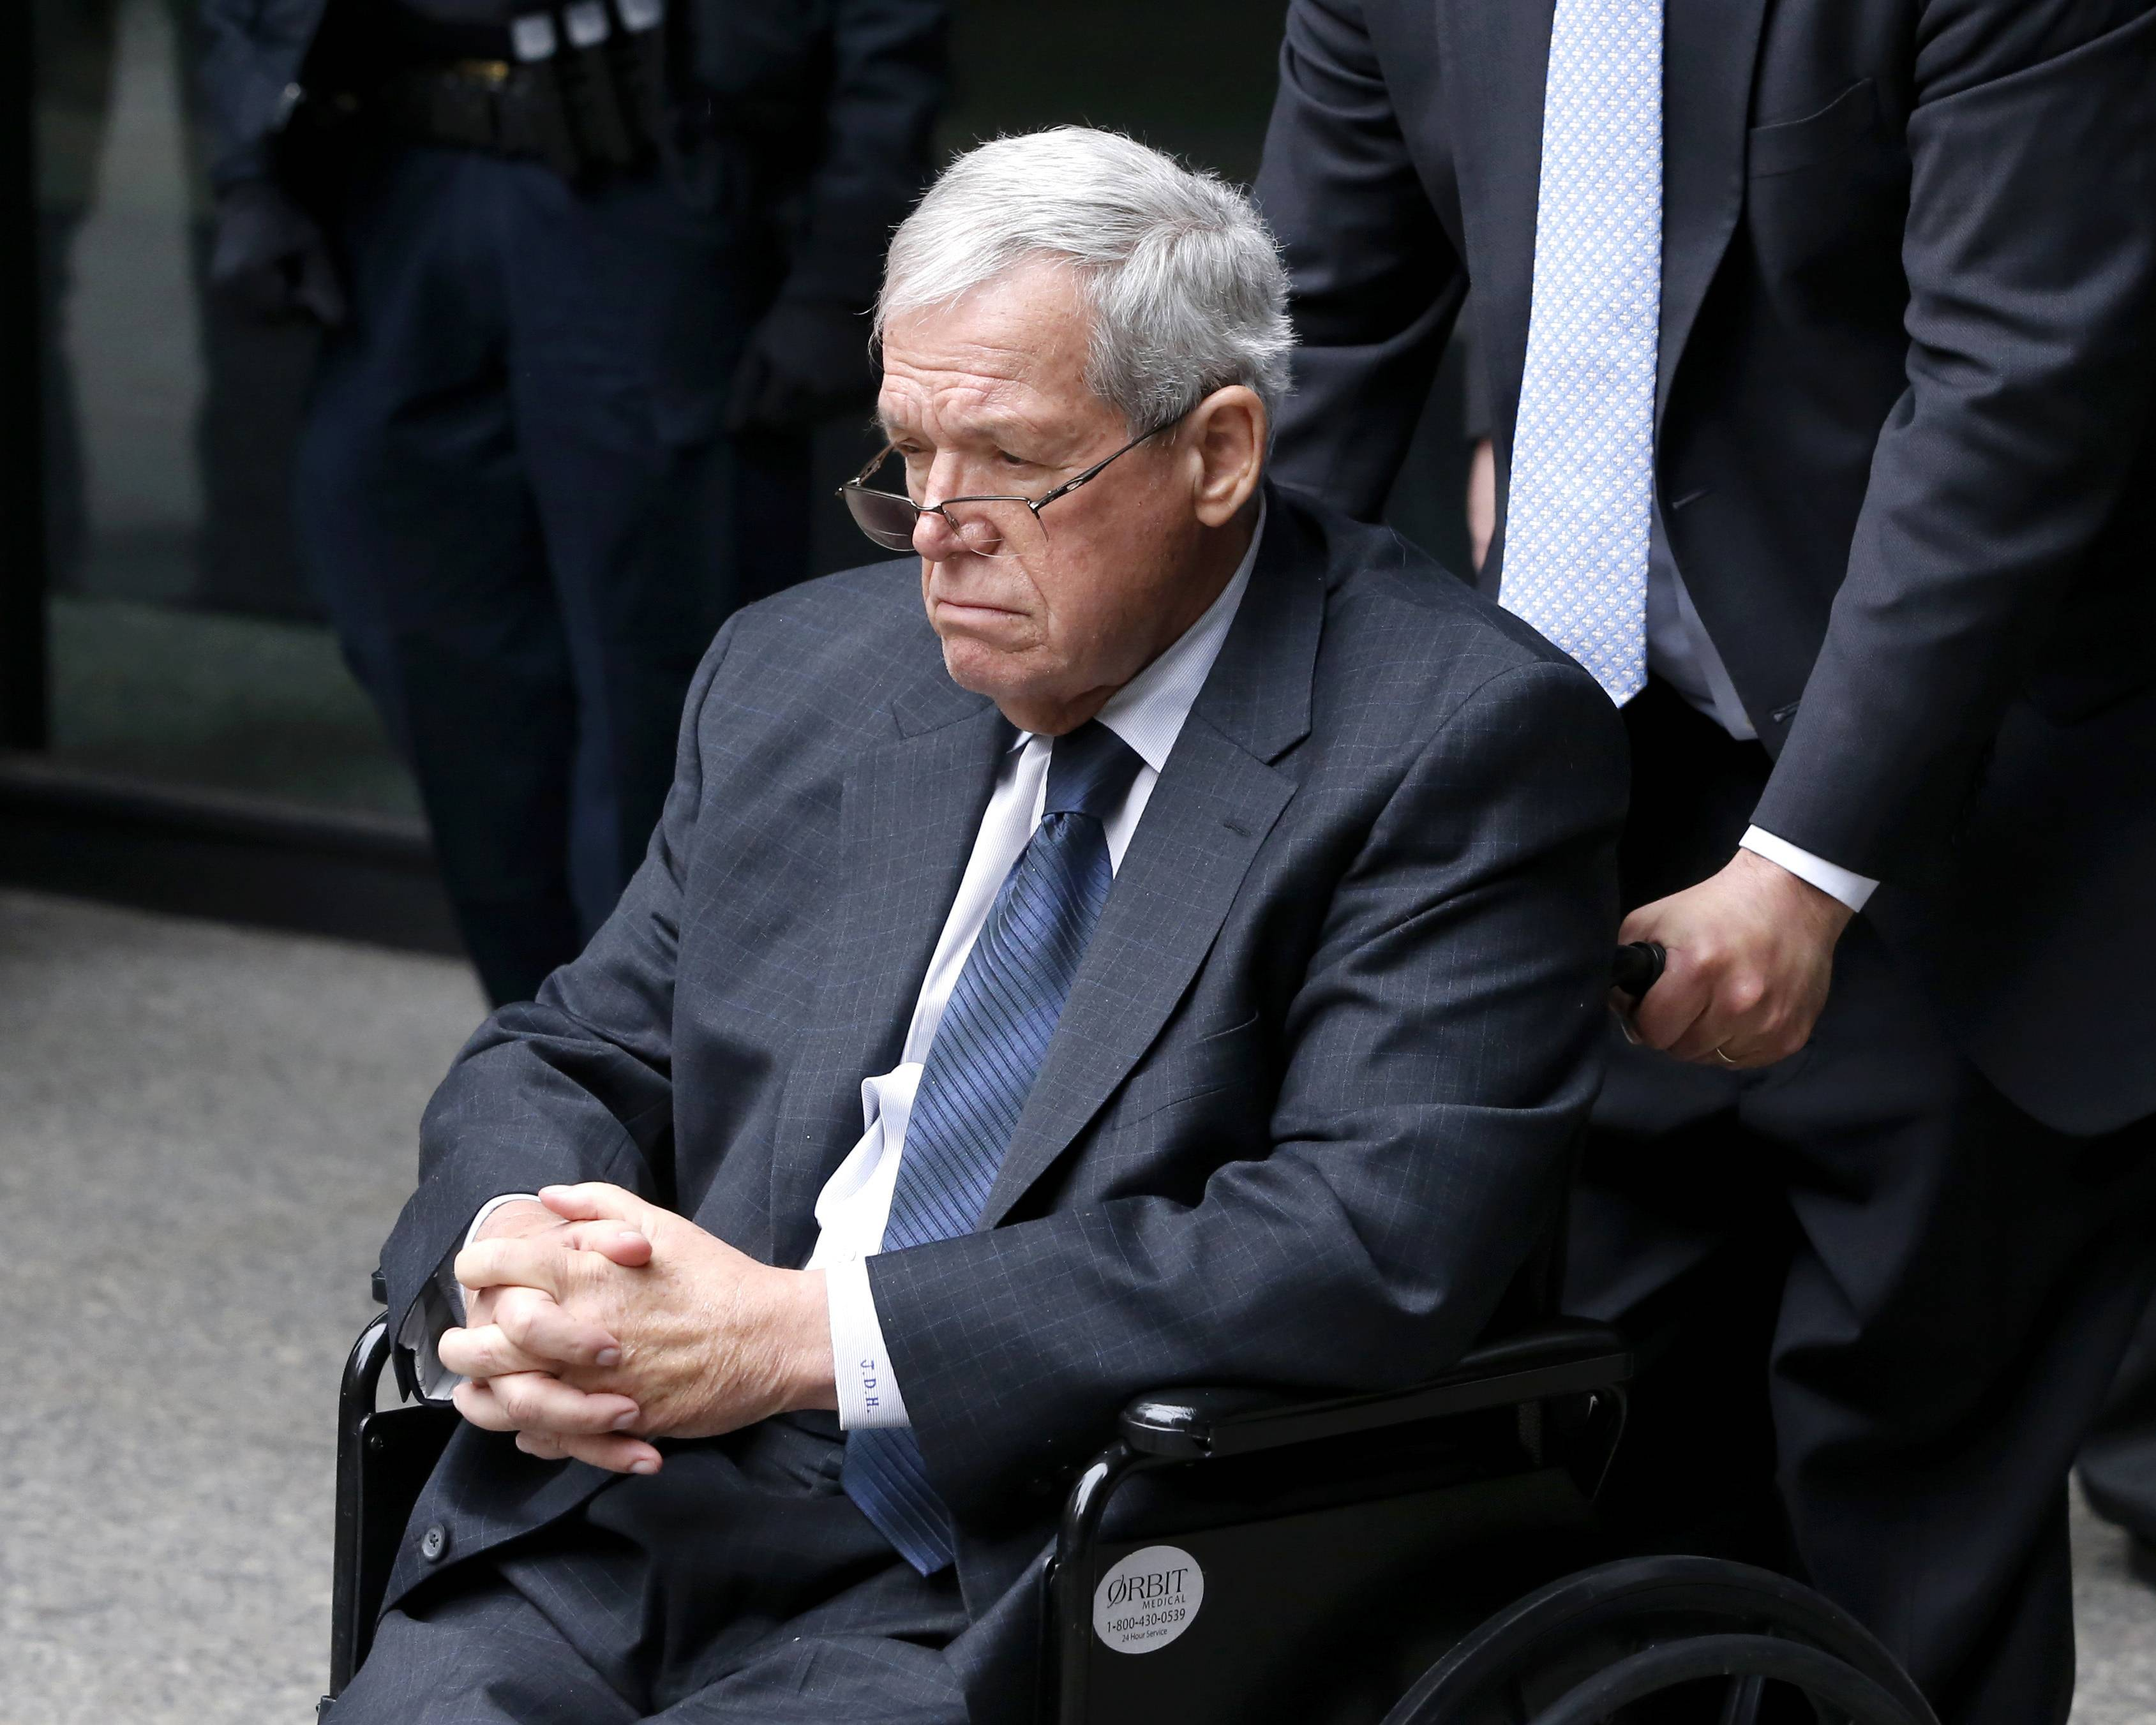 Former House Speaker Dennis Hastert departs the federal courthouse in Chicago last month after his sentencing on federal banking charges.